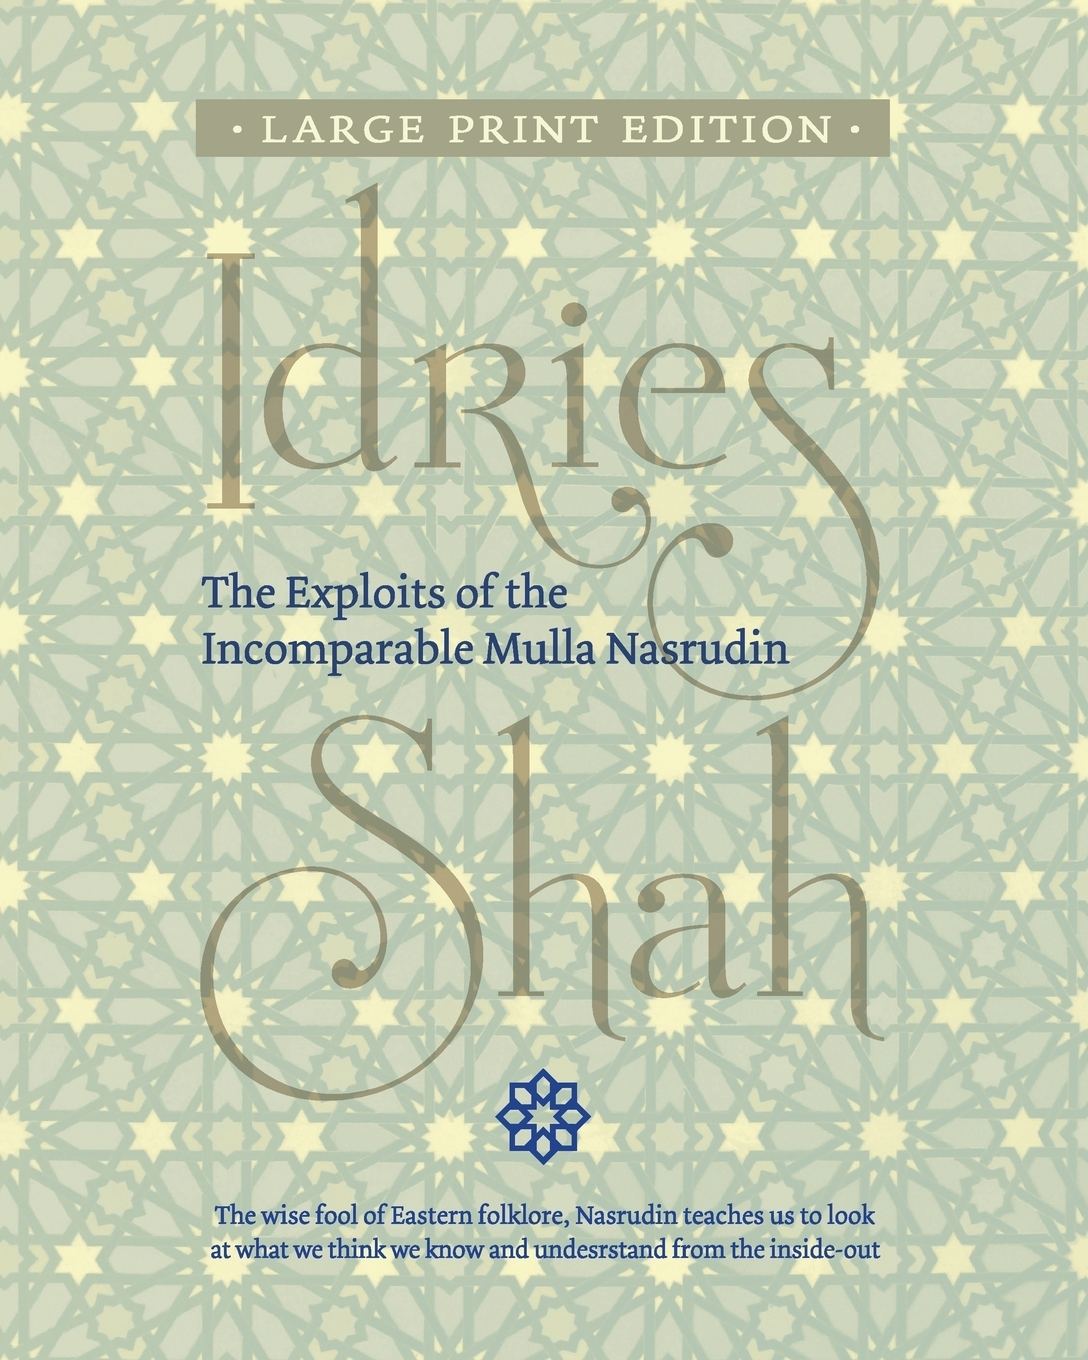 Idries Shah. The Exploits of the Incomparable Mulla Nasrudin